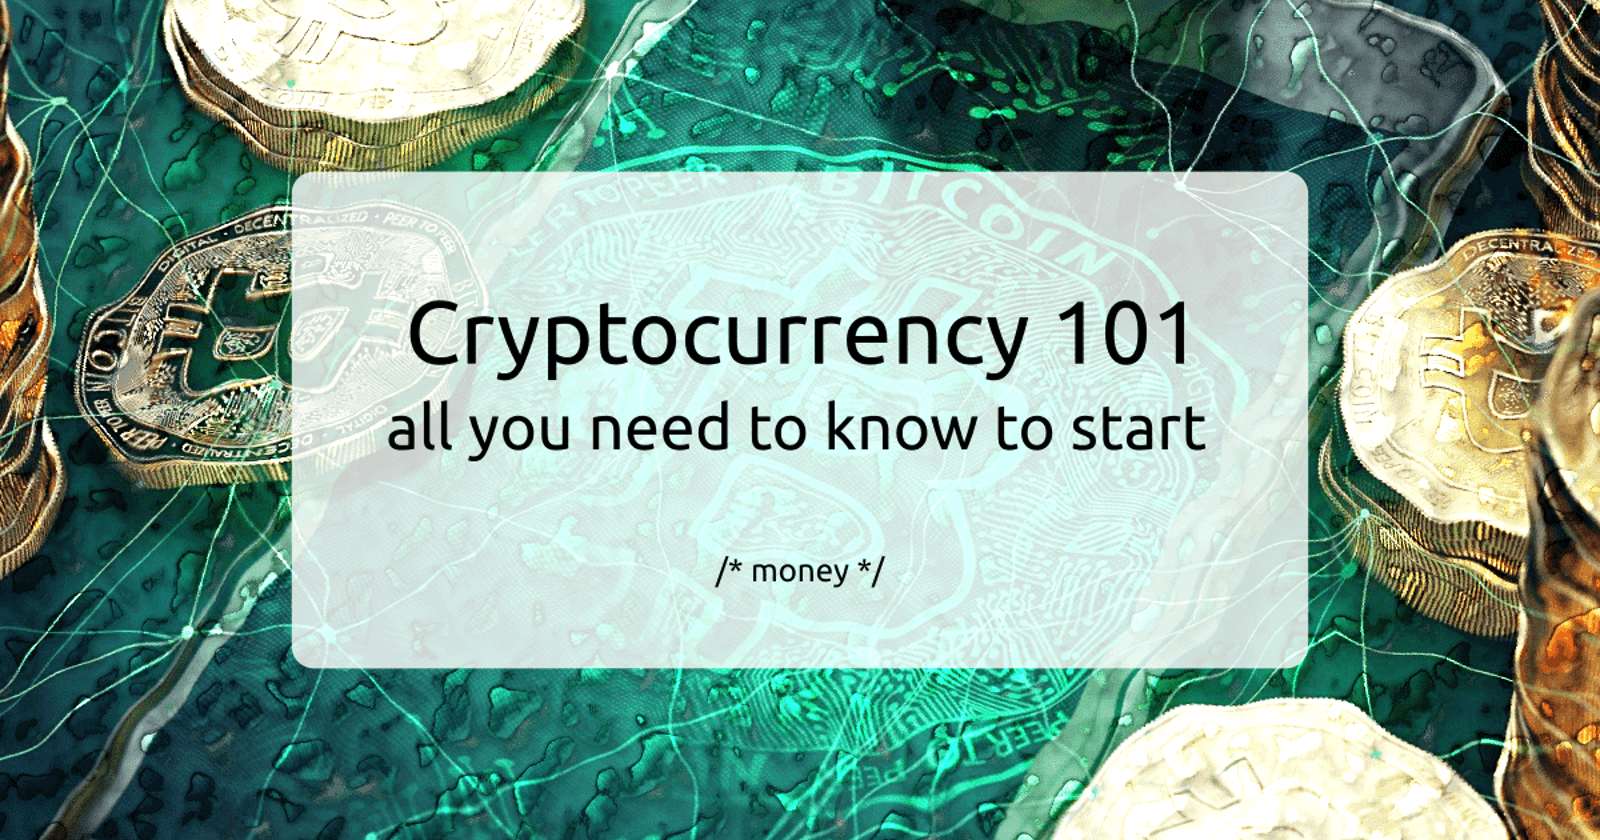 Cryptocurrency 101: all you need to know to start